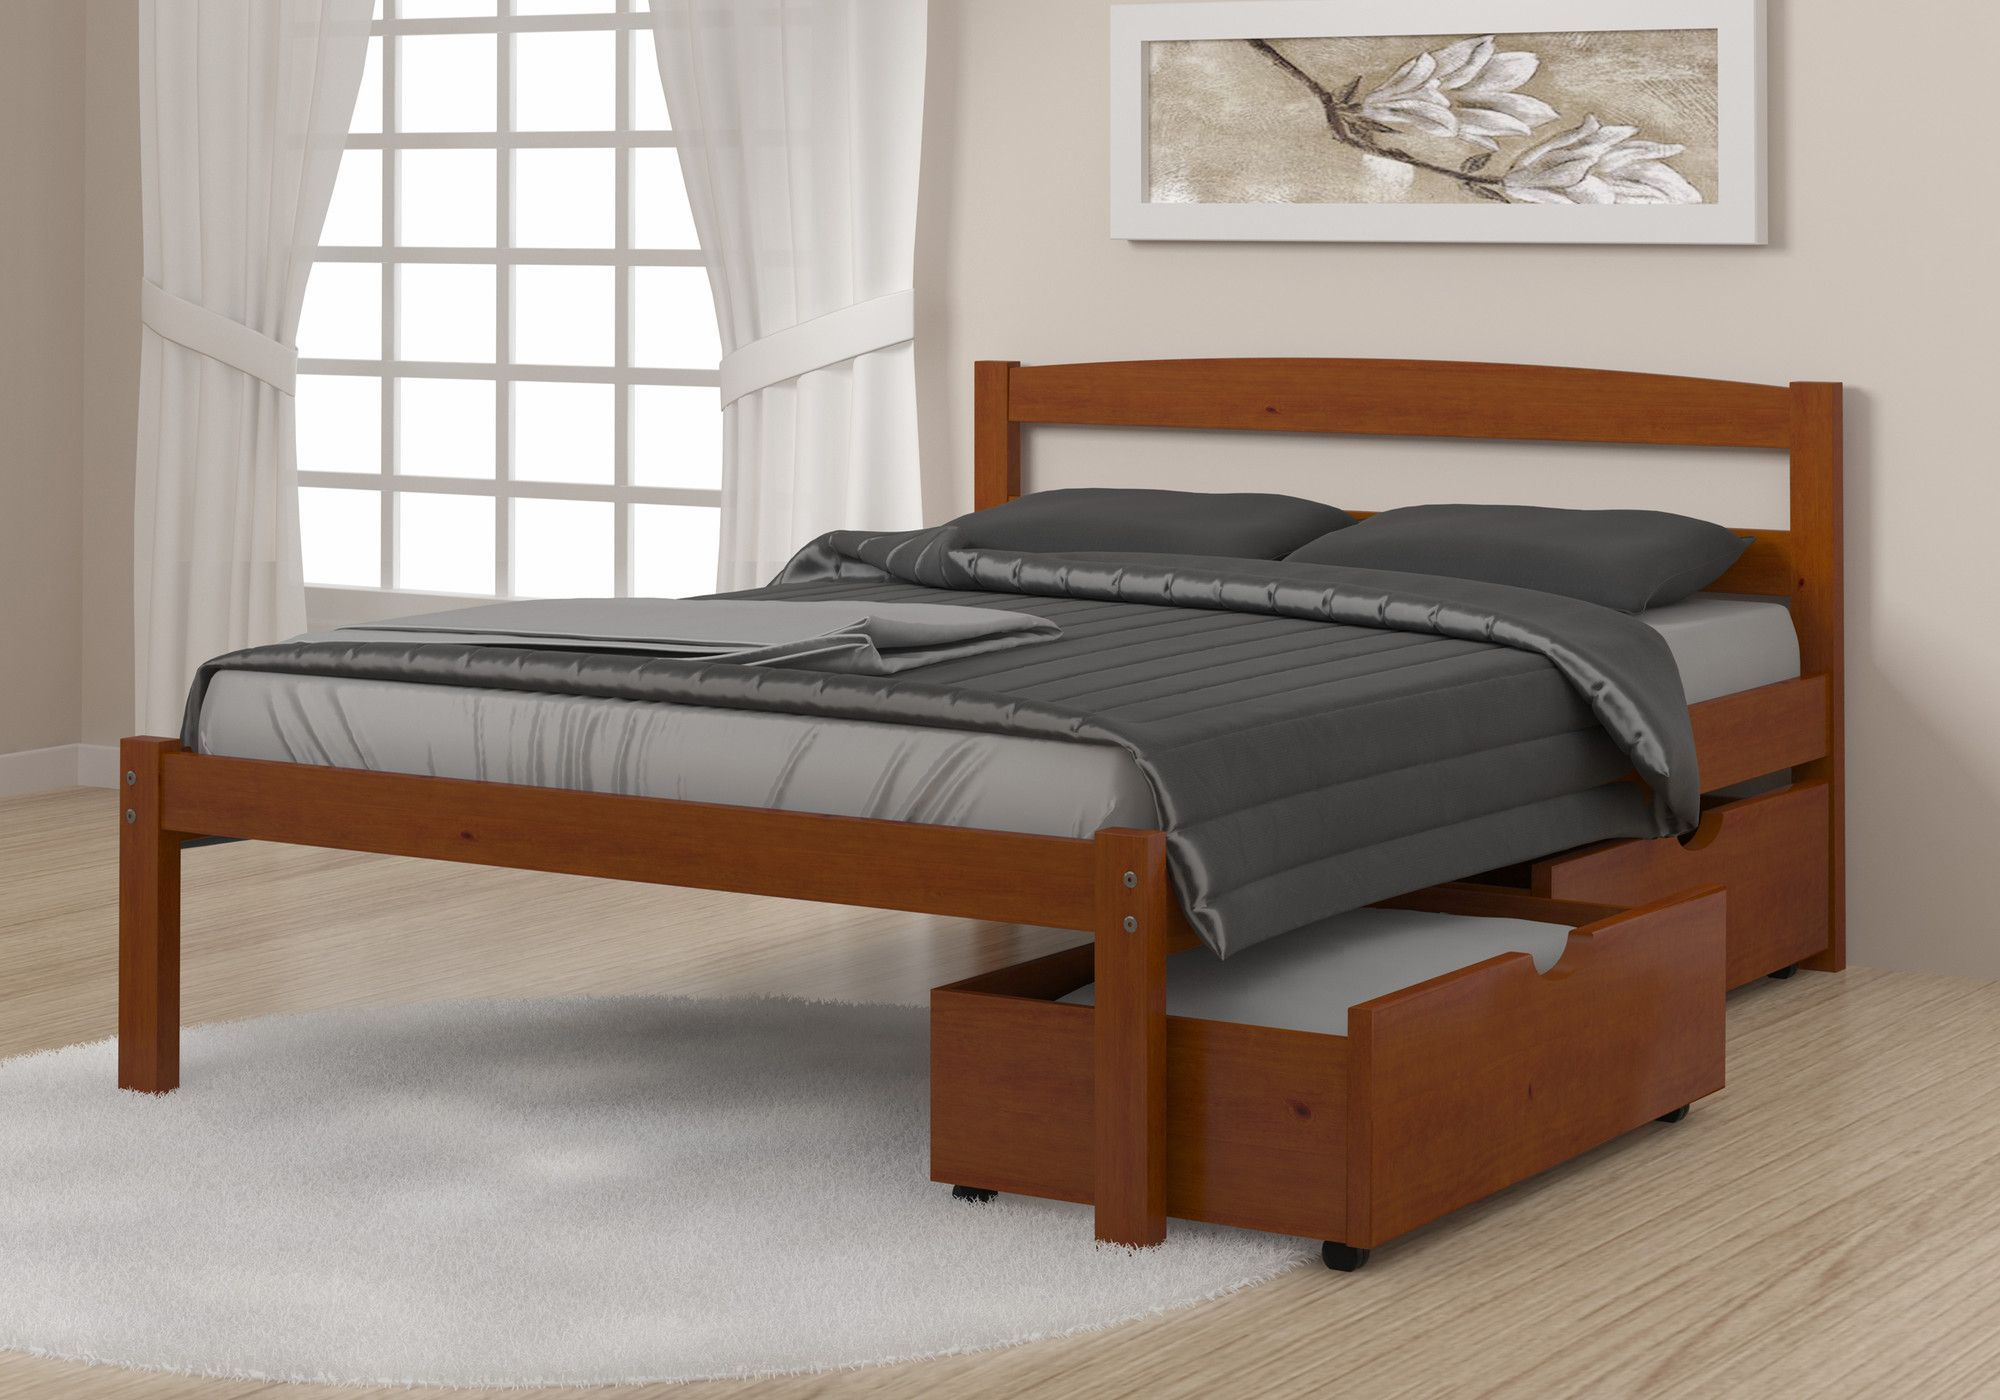 Alstons Manhattan Bedroom Furniture Econo Full Double Storage Platform Bed Bedding Storage Ideas